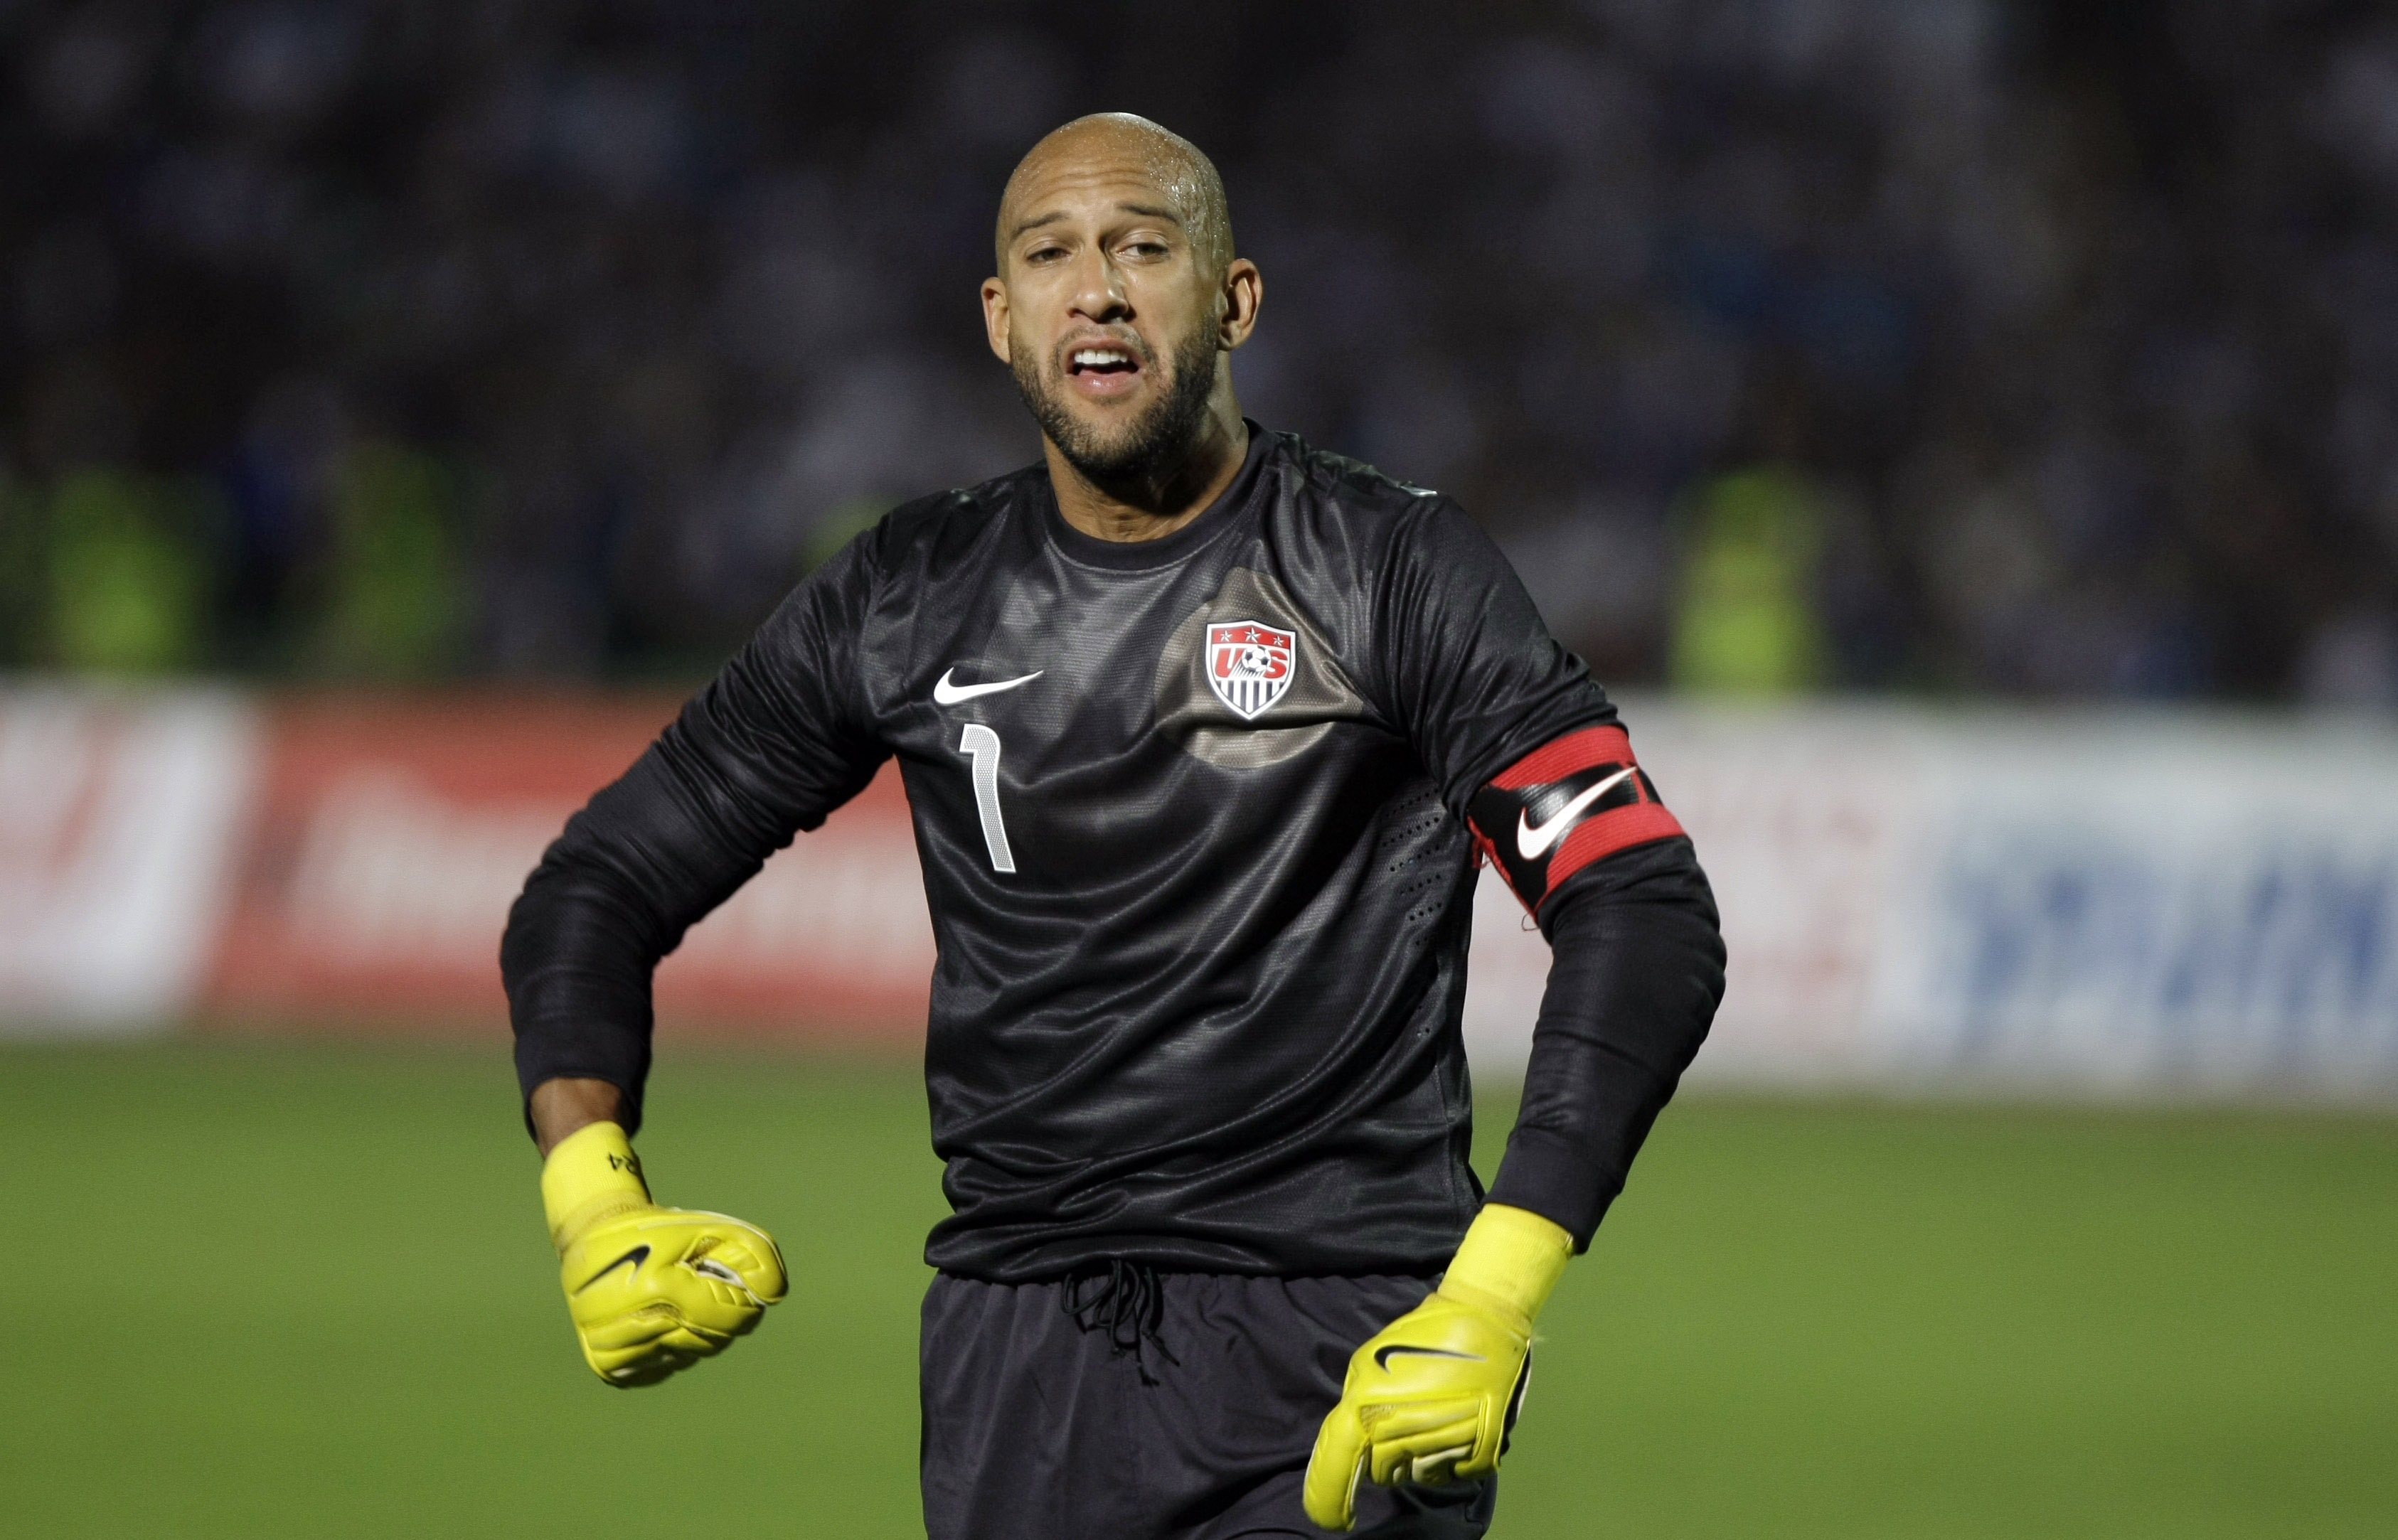 Tim Howard Wallpapers & Pictures